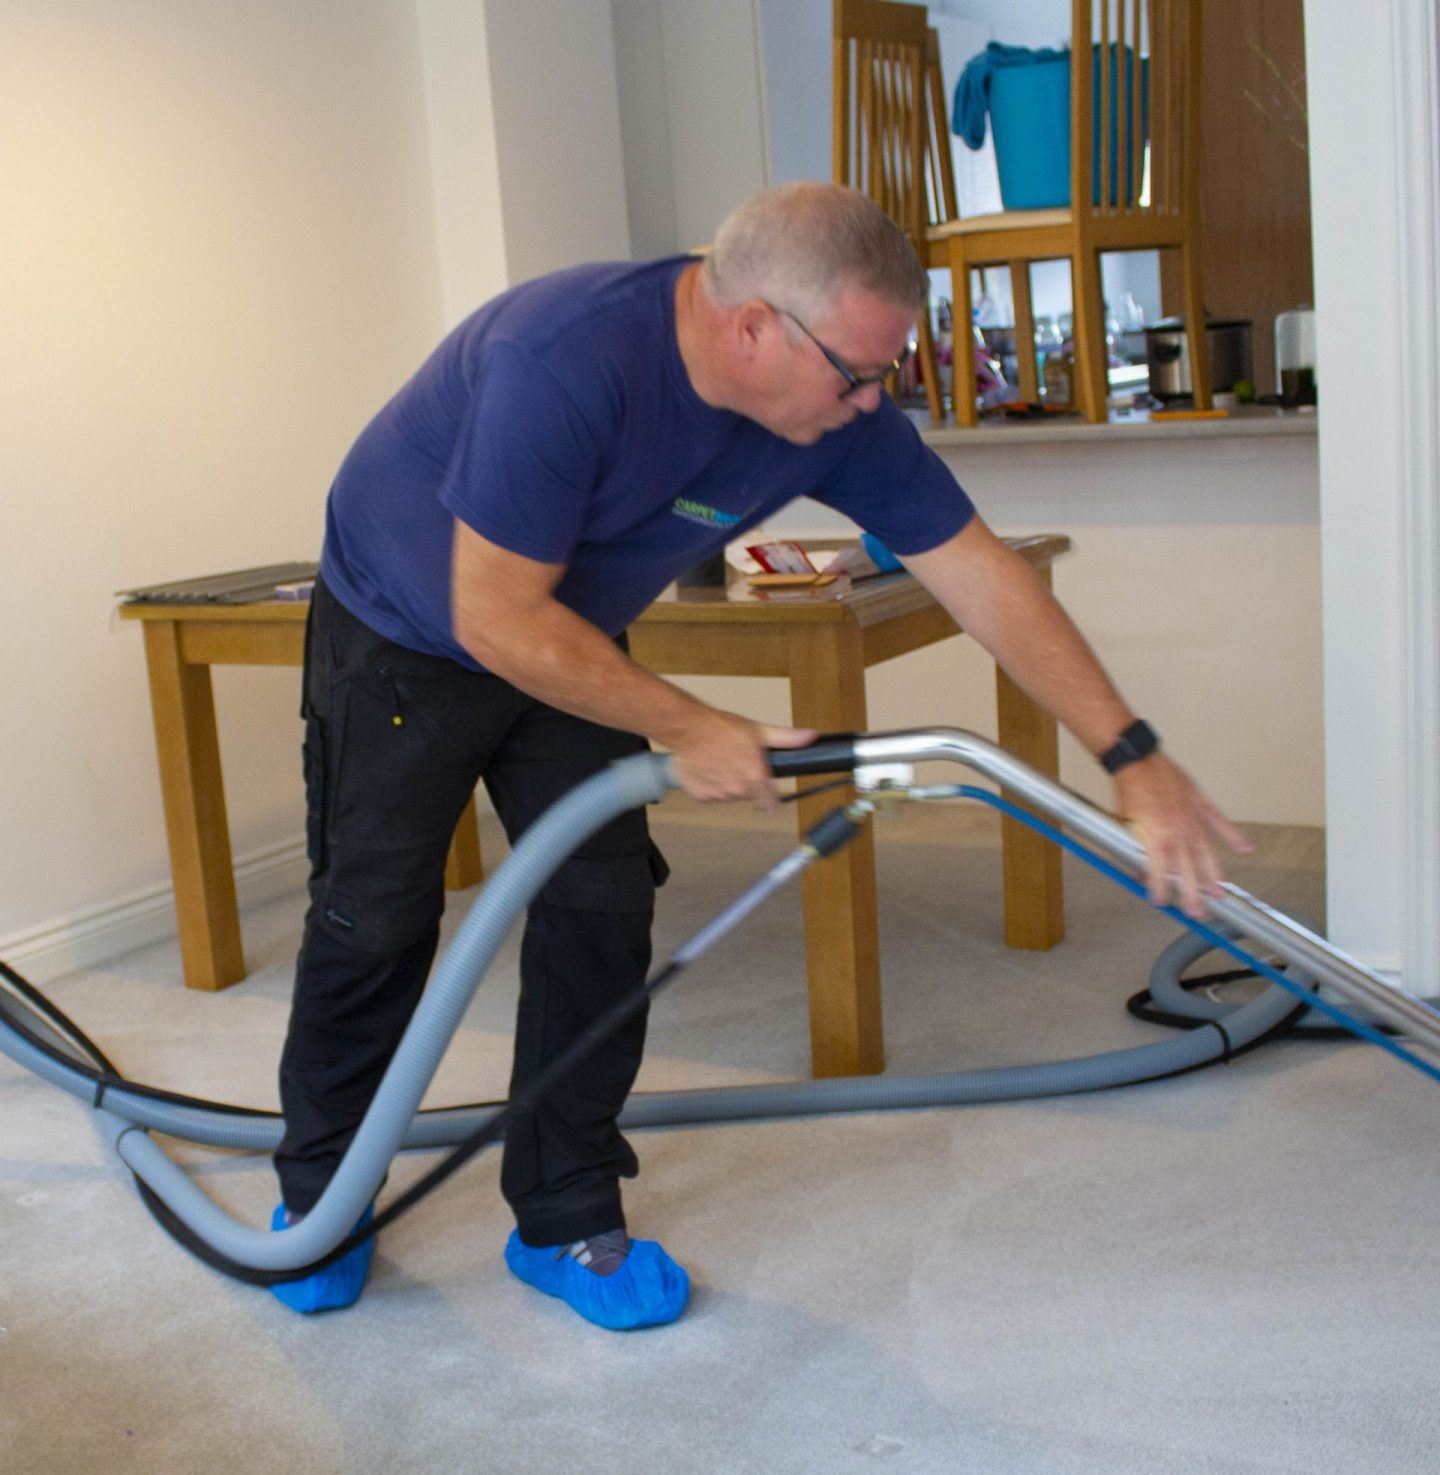 steam cleaning carpets, steam cleaner, upholstery cleaning, dadbloguk.com